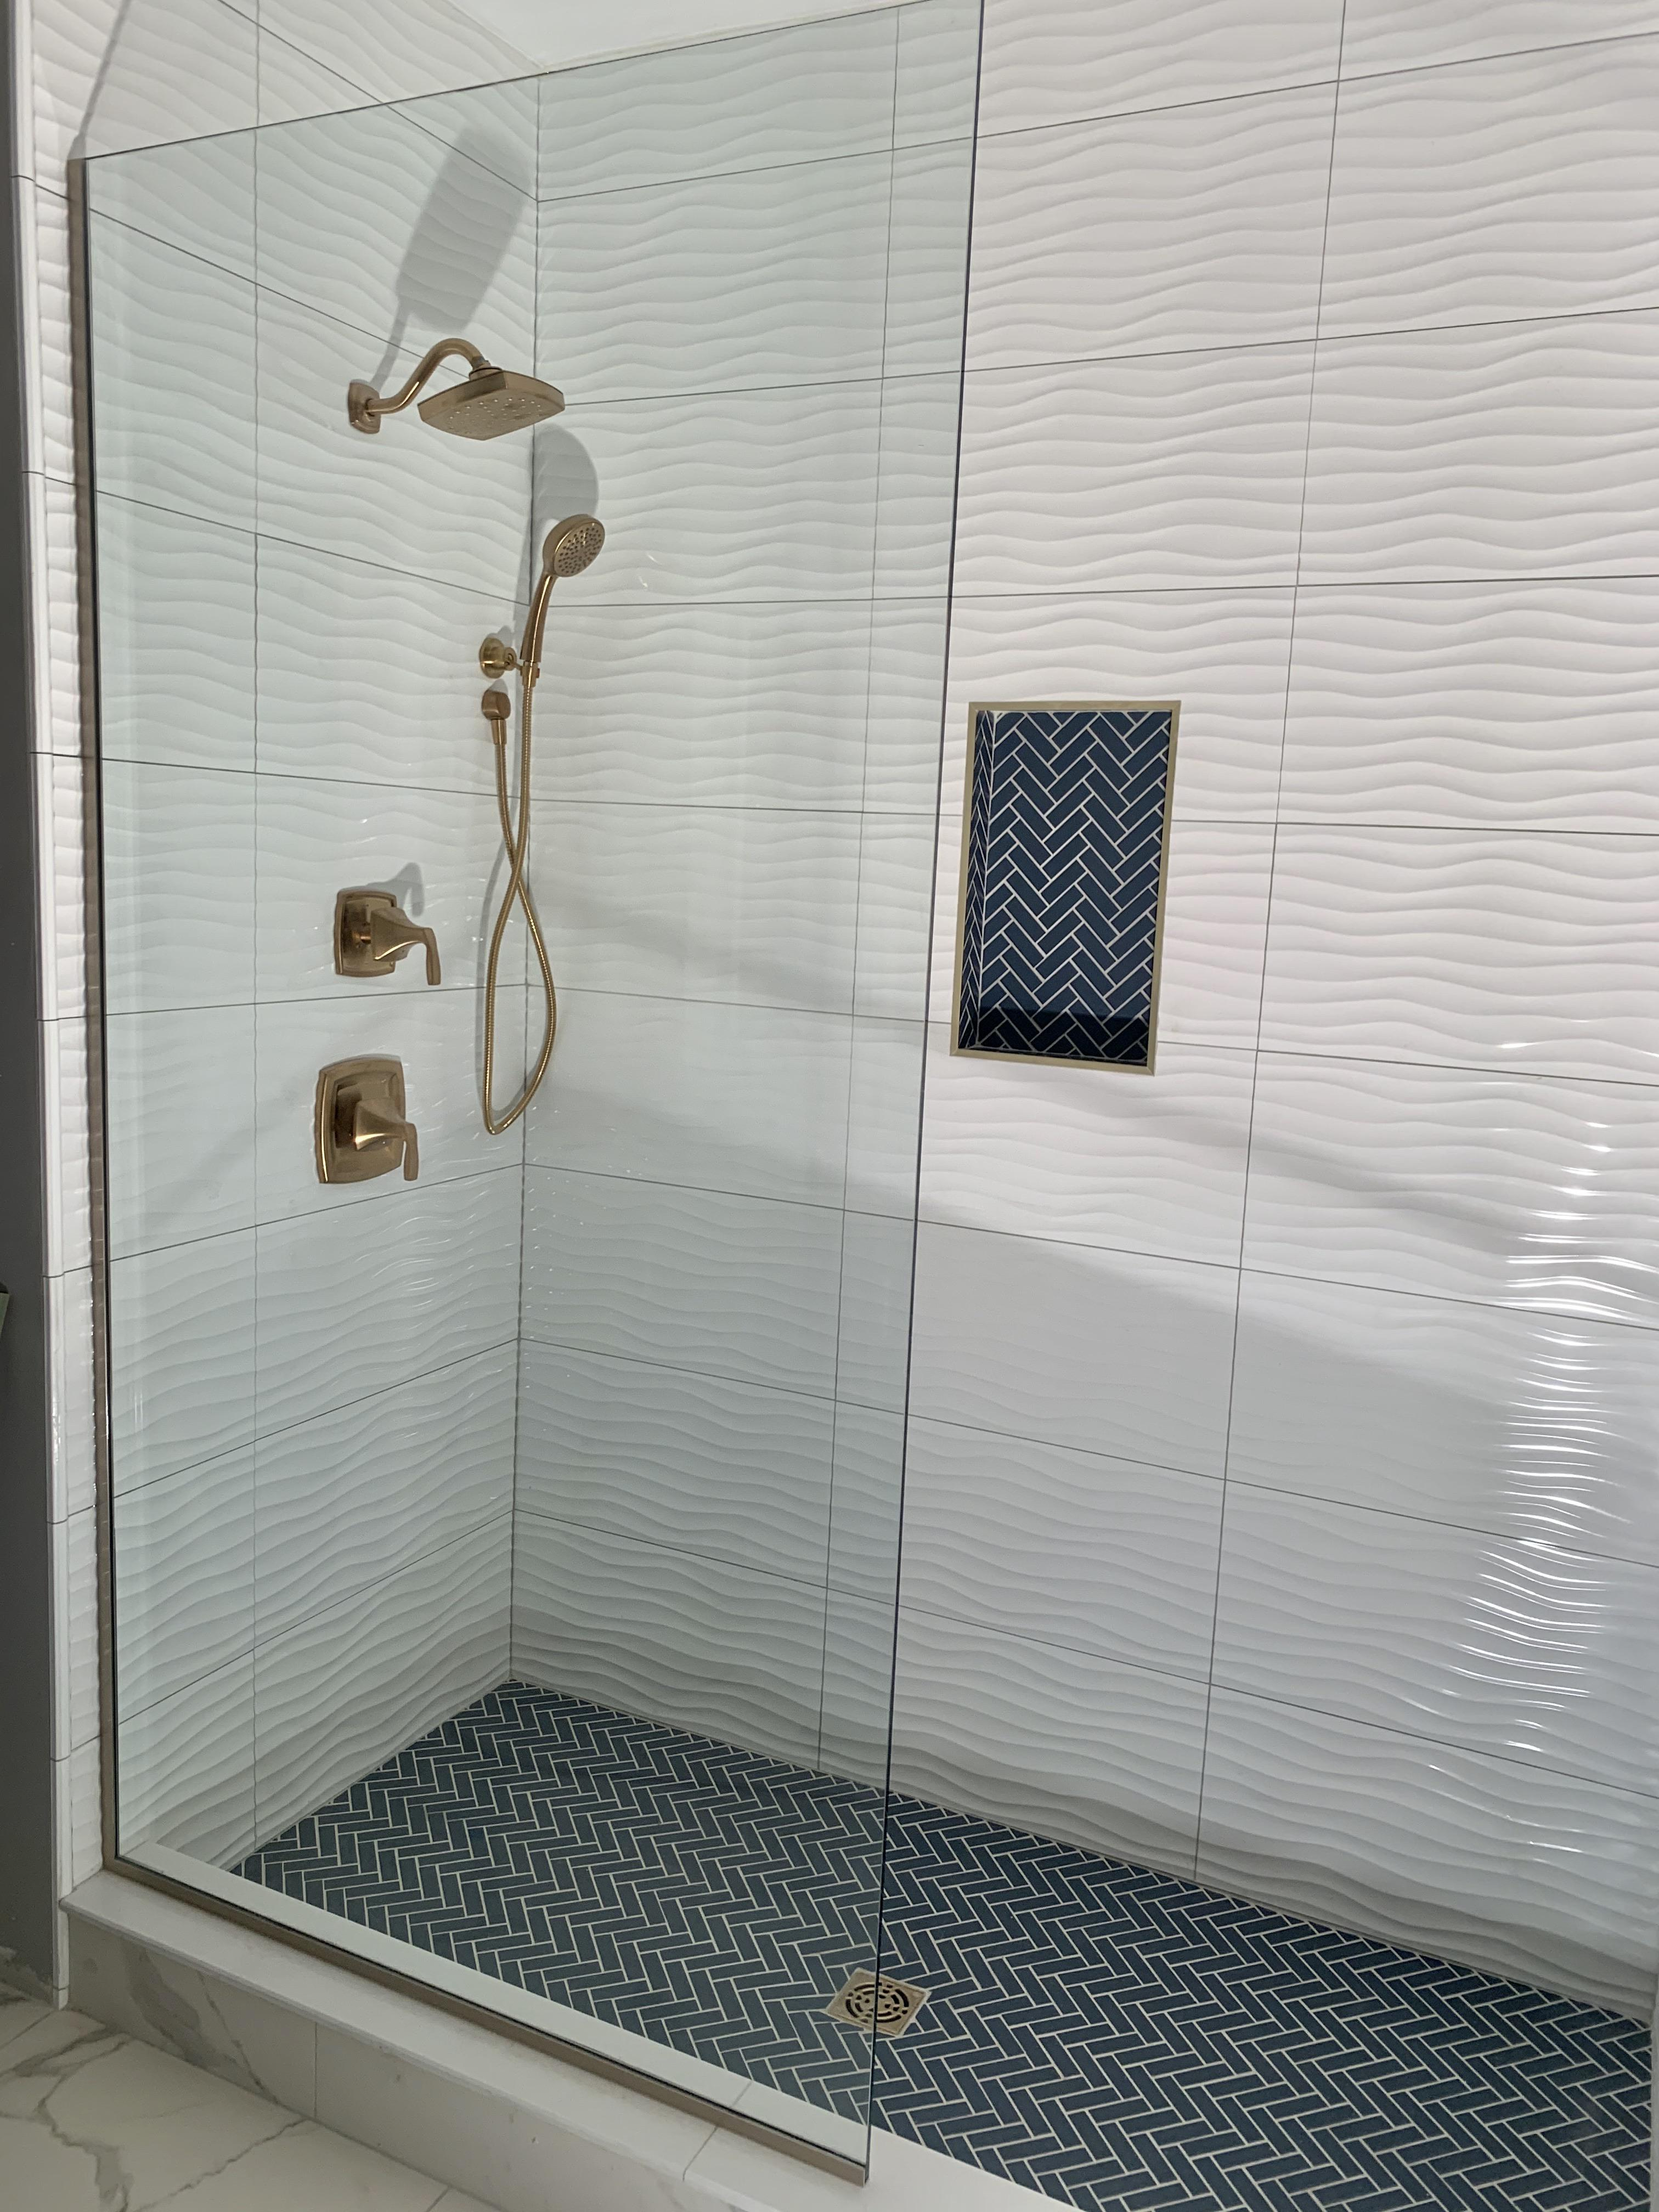 a nice wavy shower with some blue